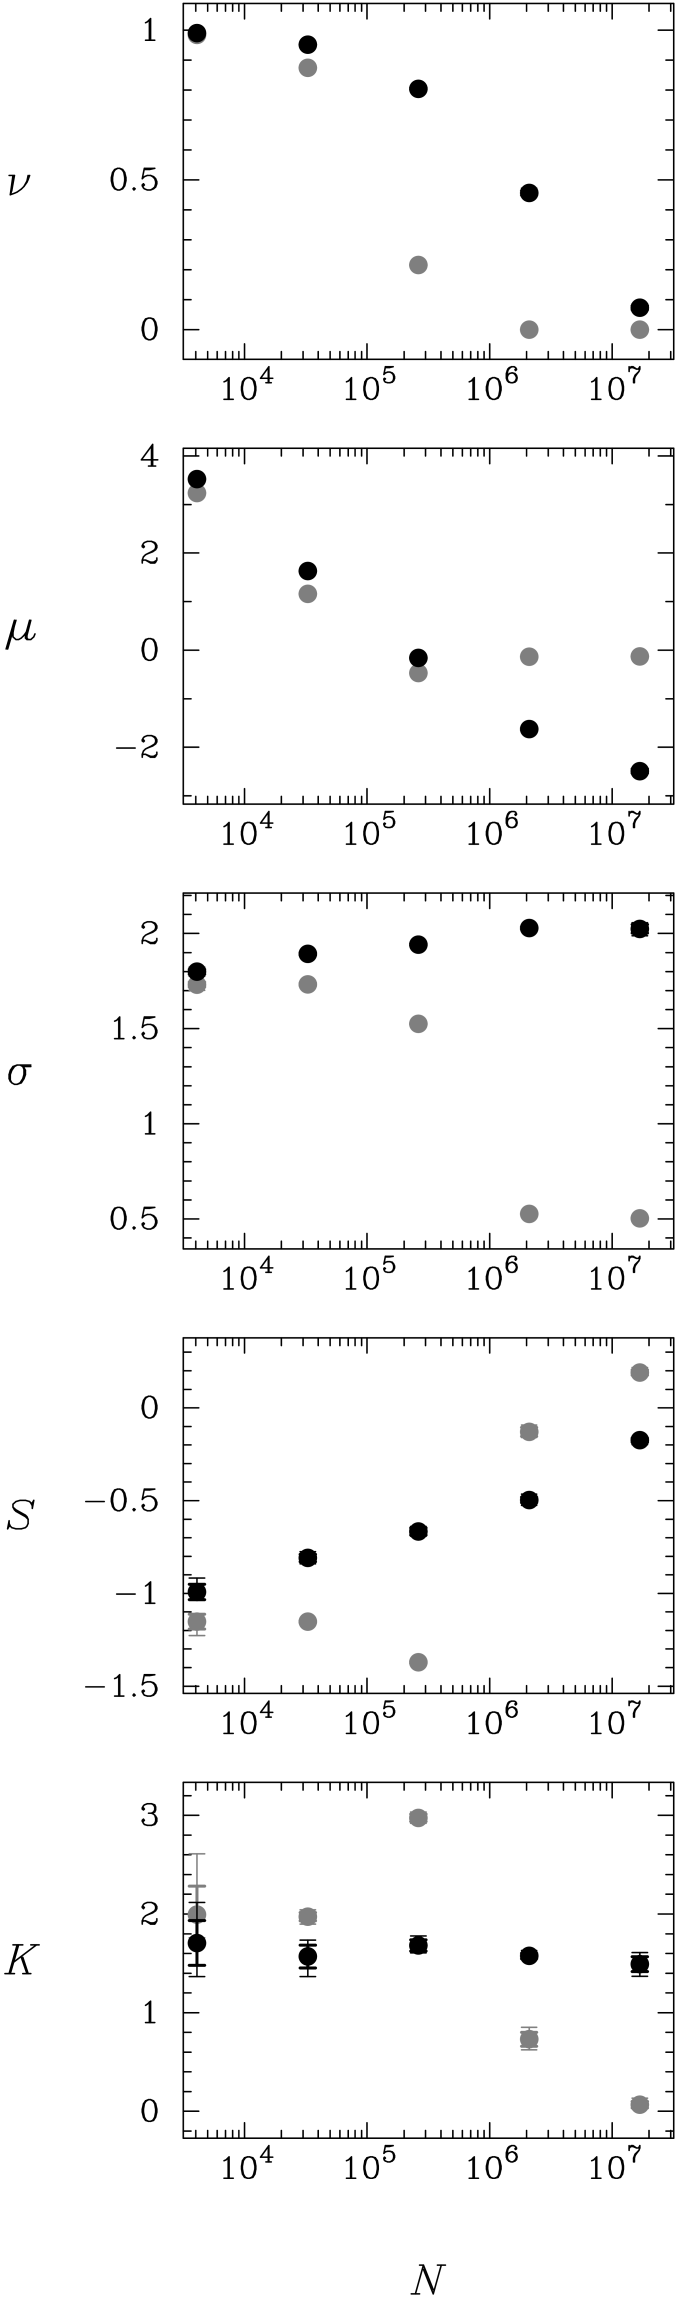 Statistics of the transformed density field as functions of